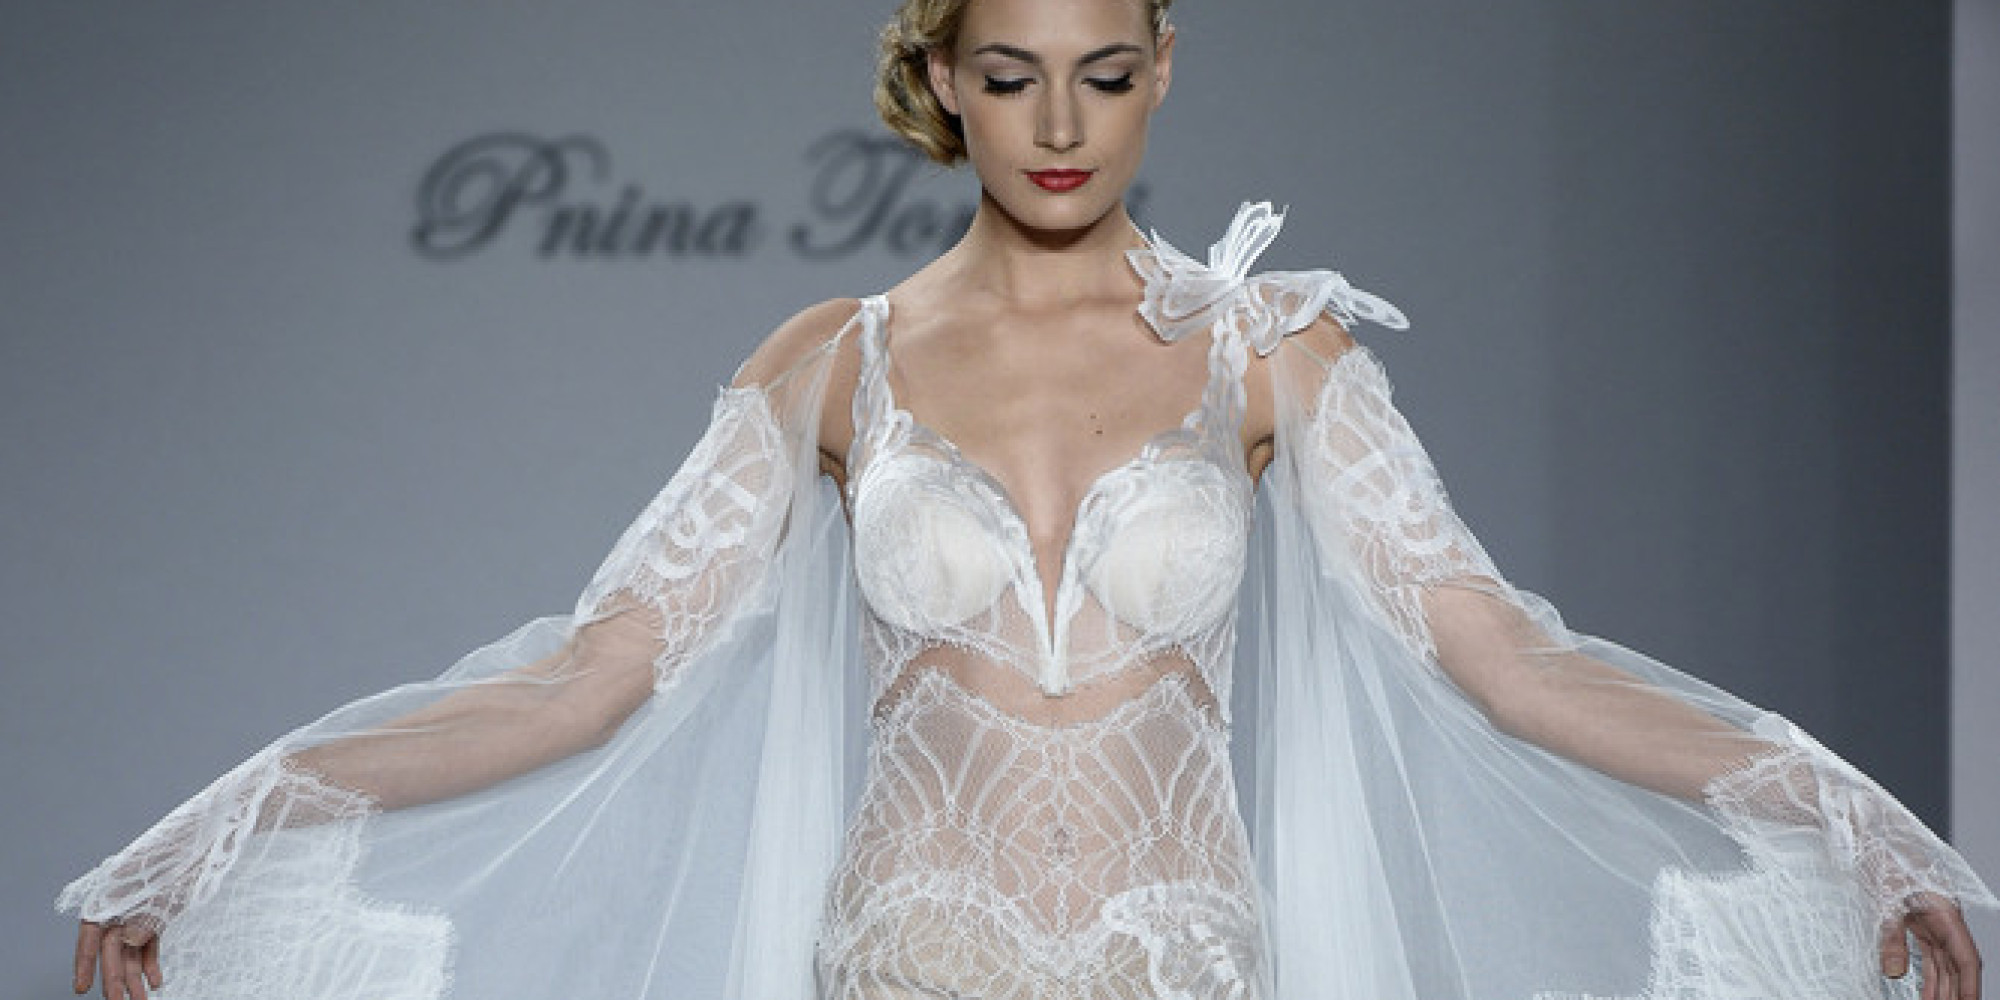 Wedding Dresses: These Wedding Dresses Are For Brides Who Dare To Go Bare